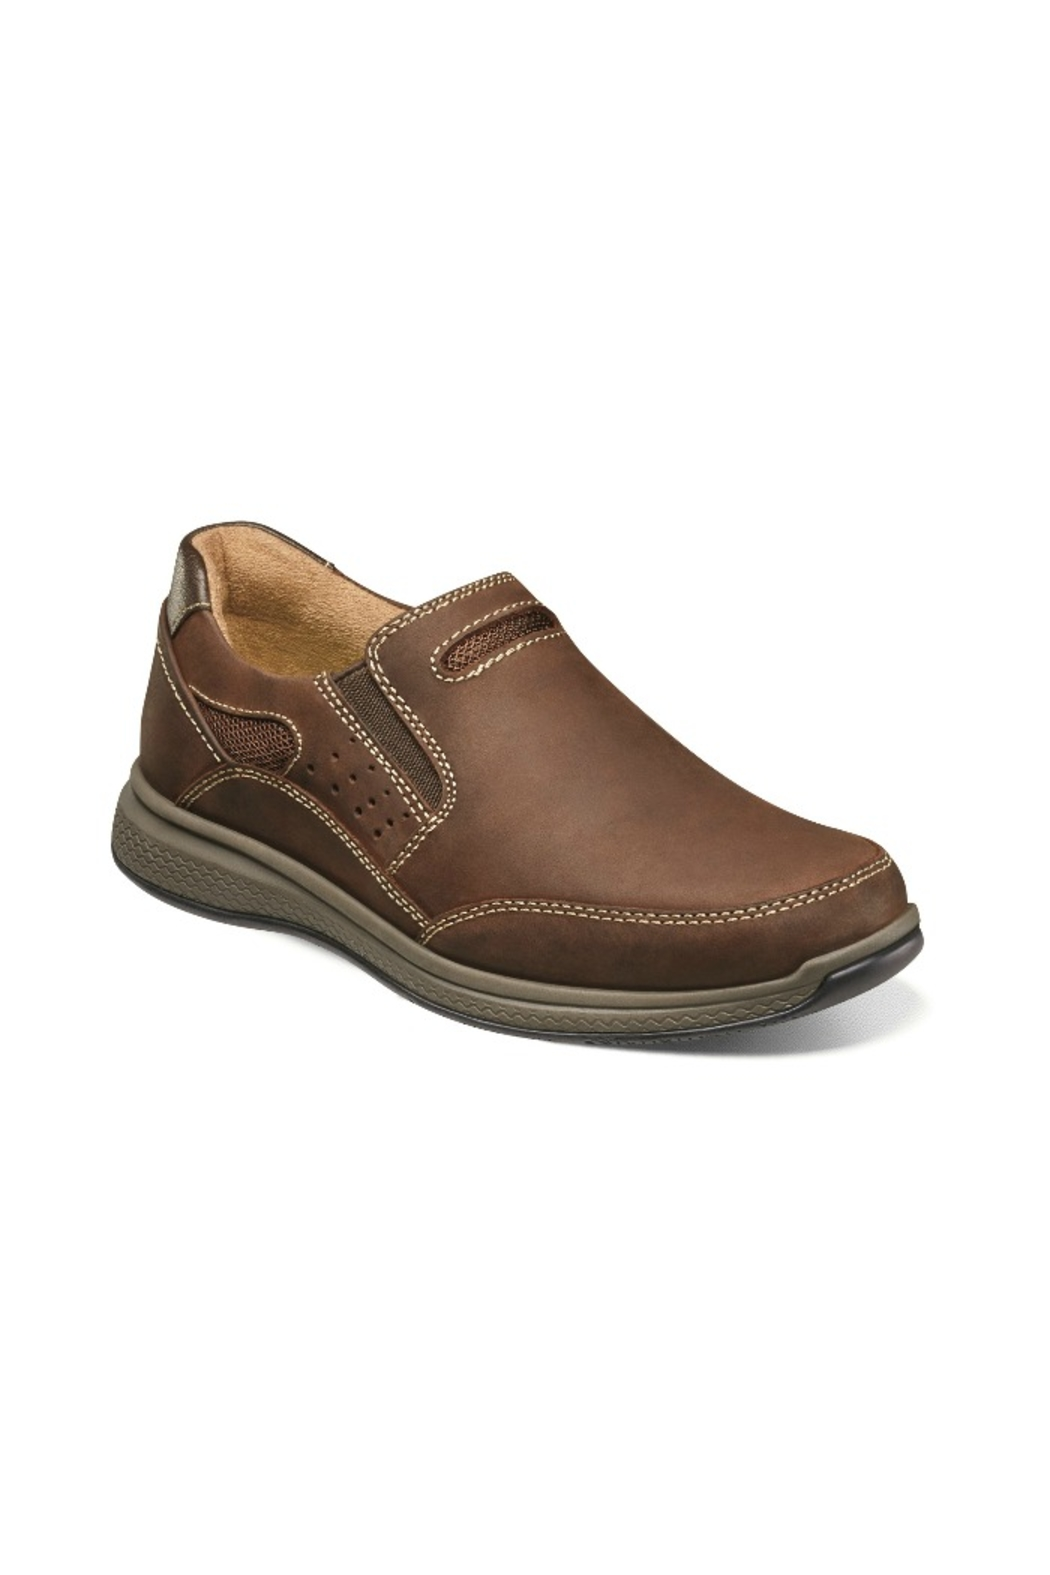 Florsheim Great Lakes Jr. Sports Slip On - Main Image